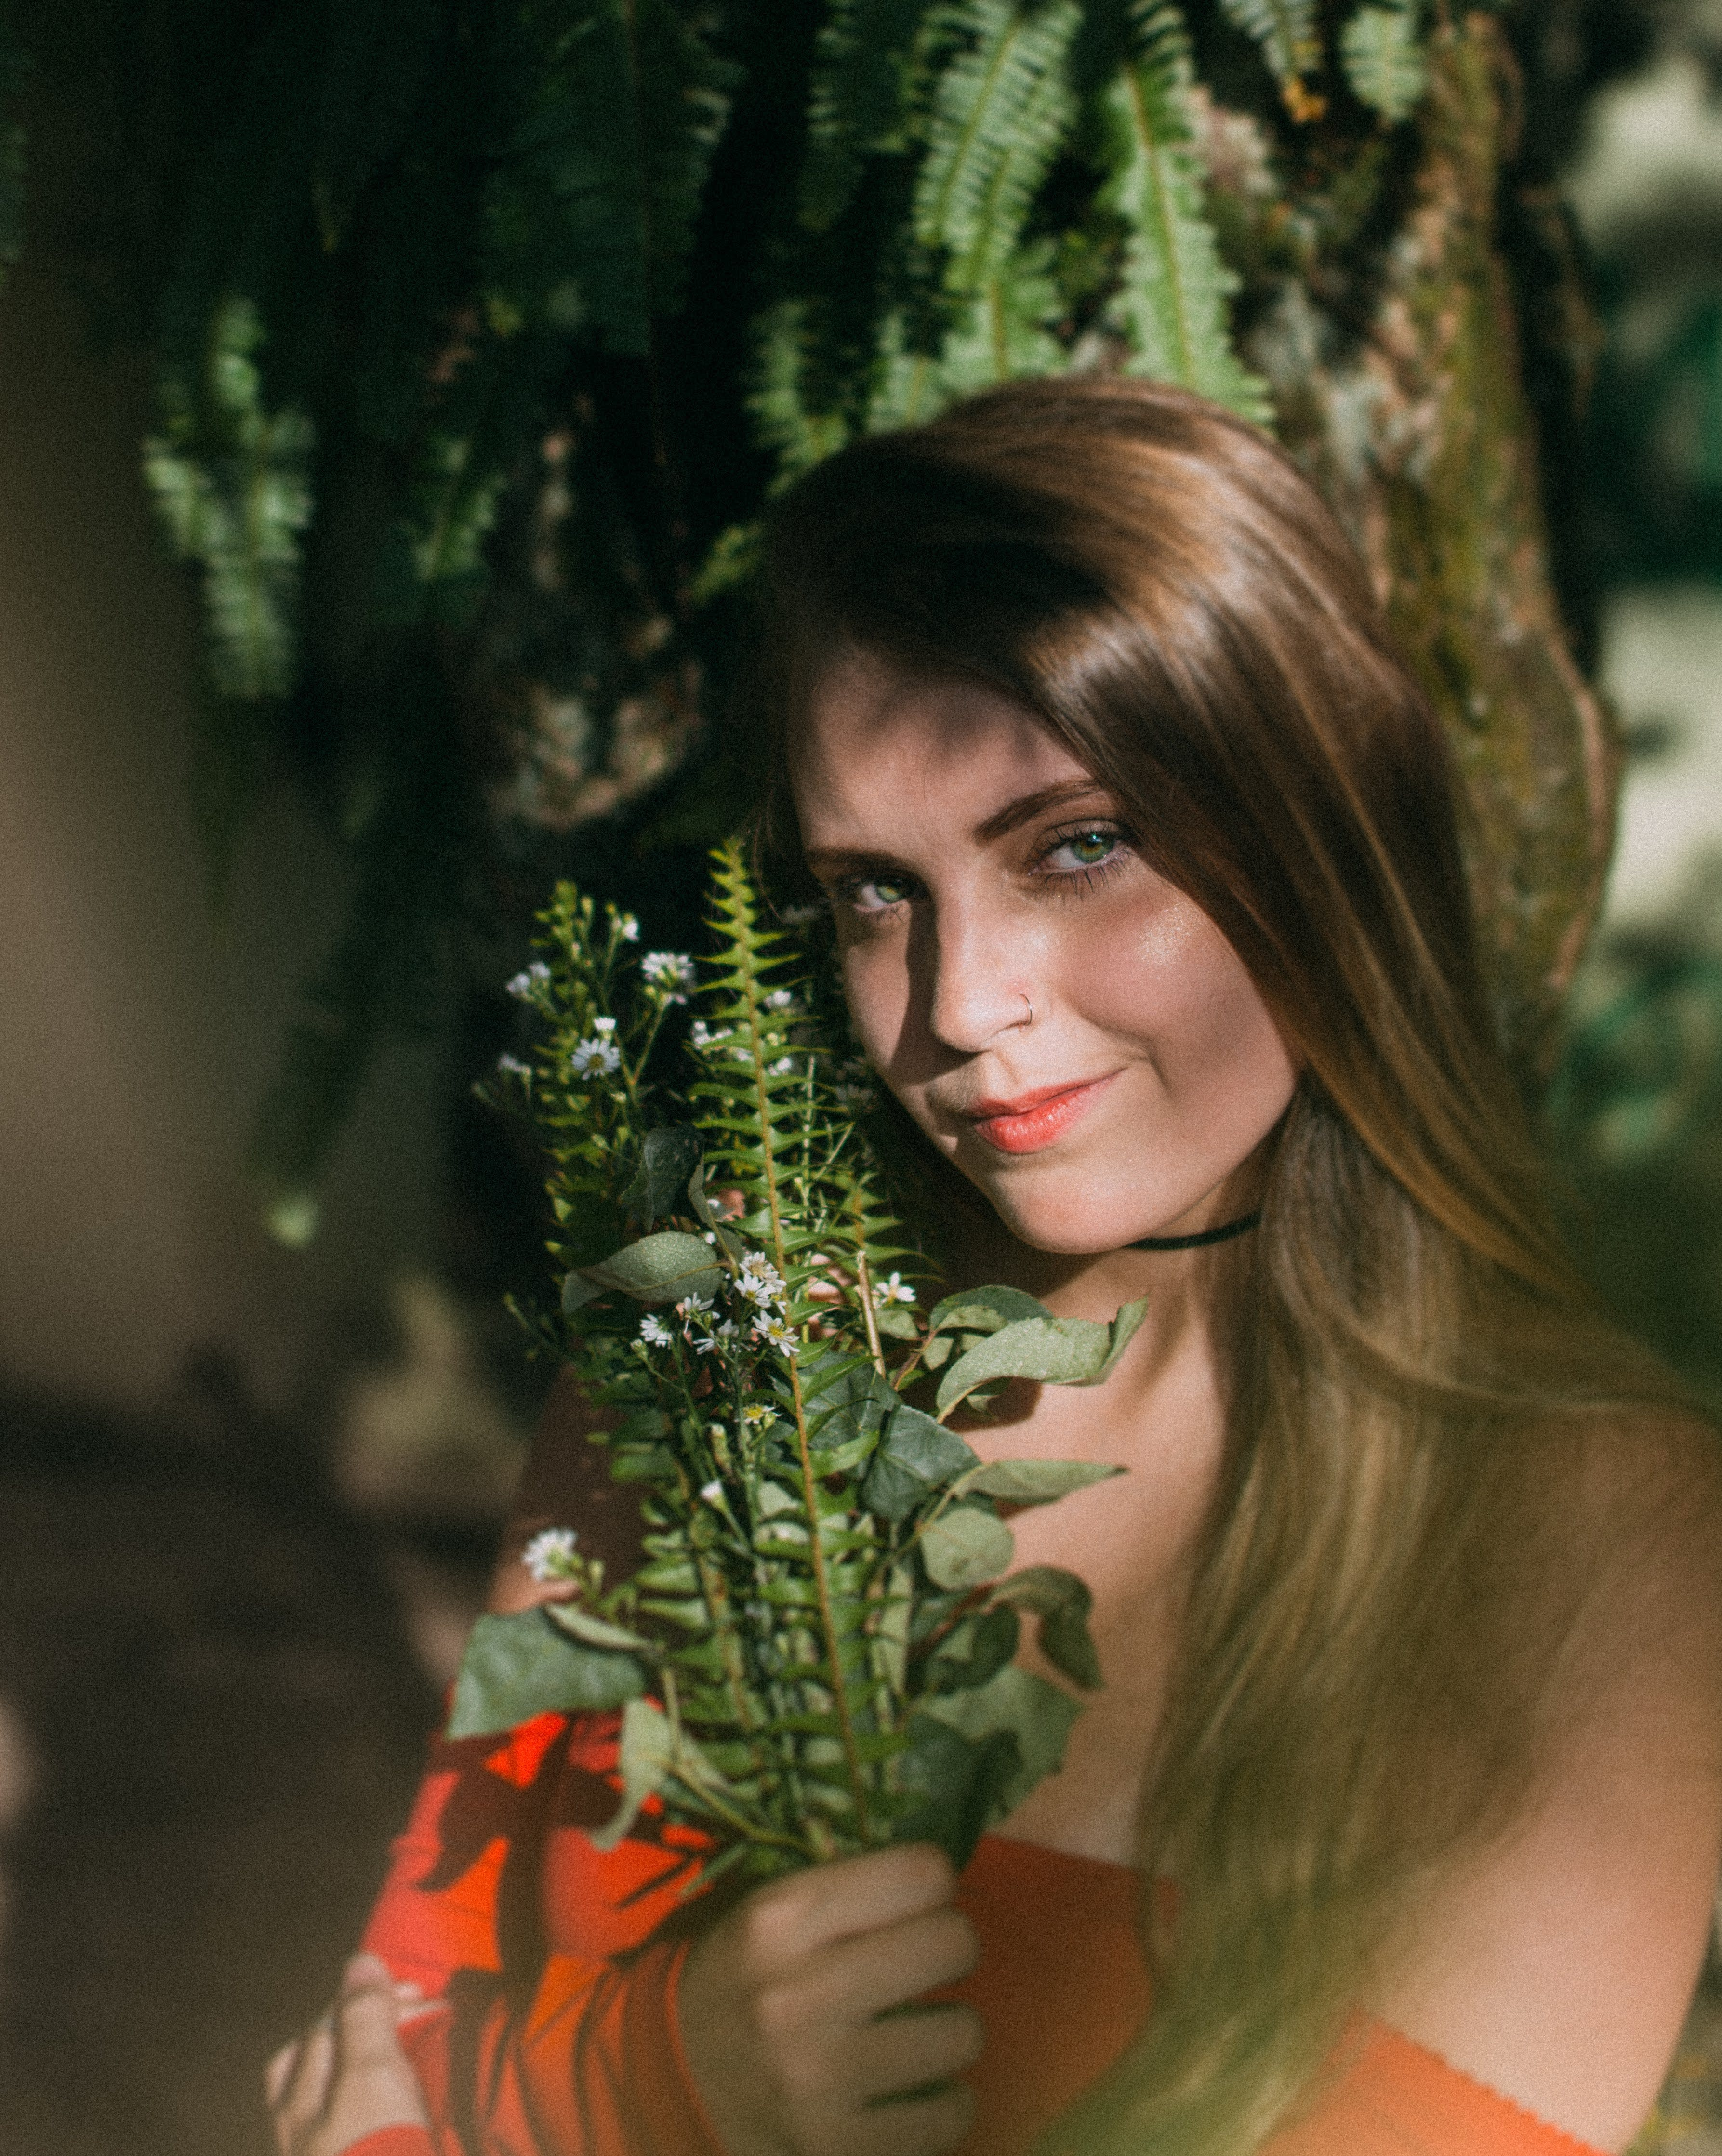 Smiling Woman Leaning On Tree Holding Plants